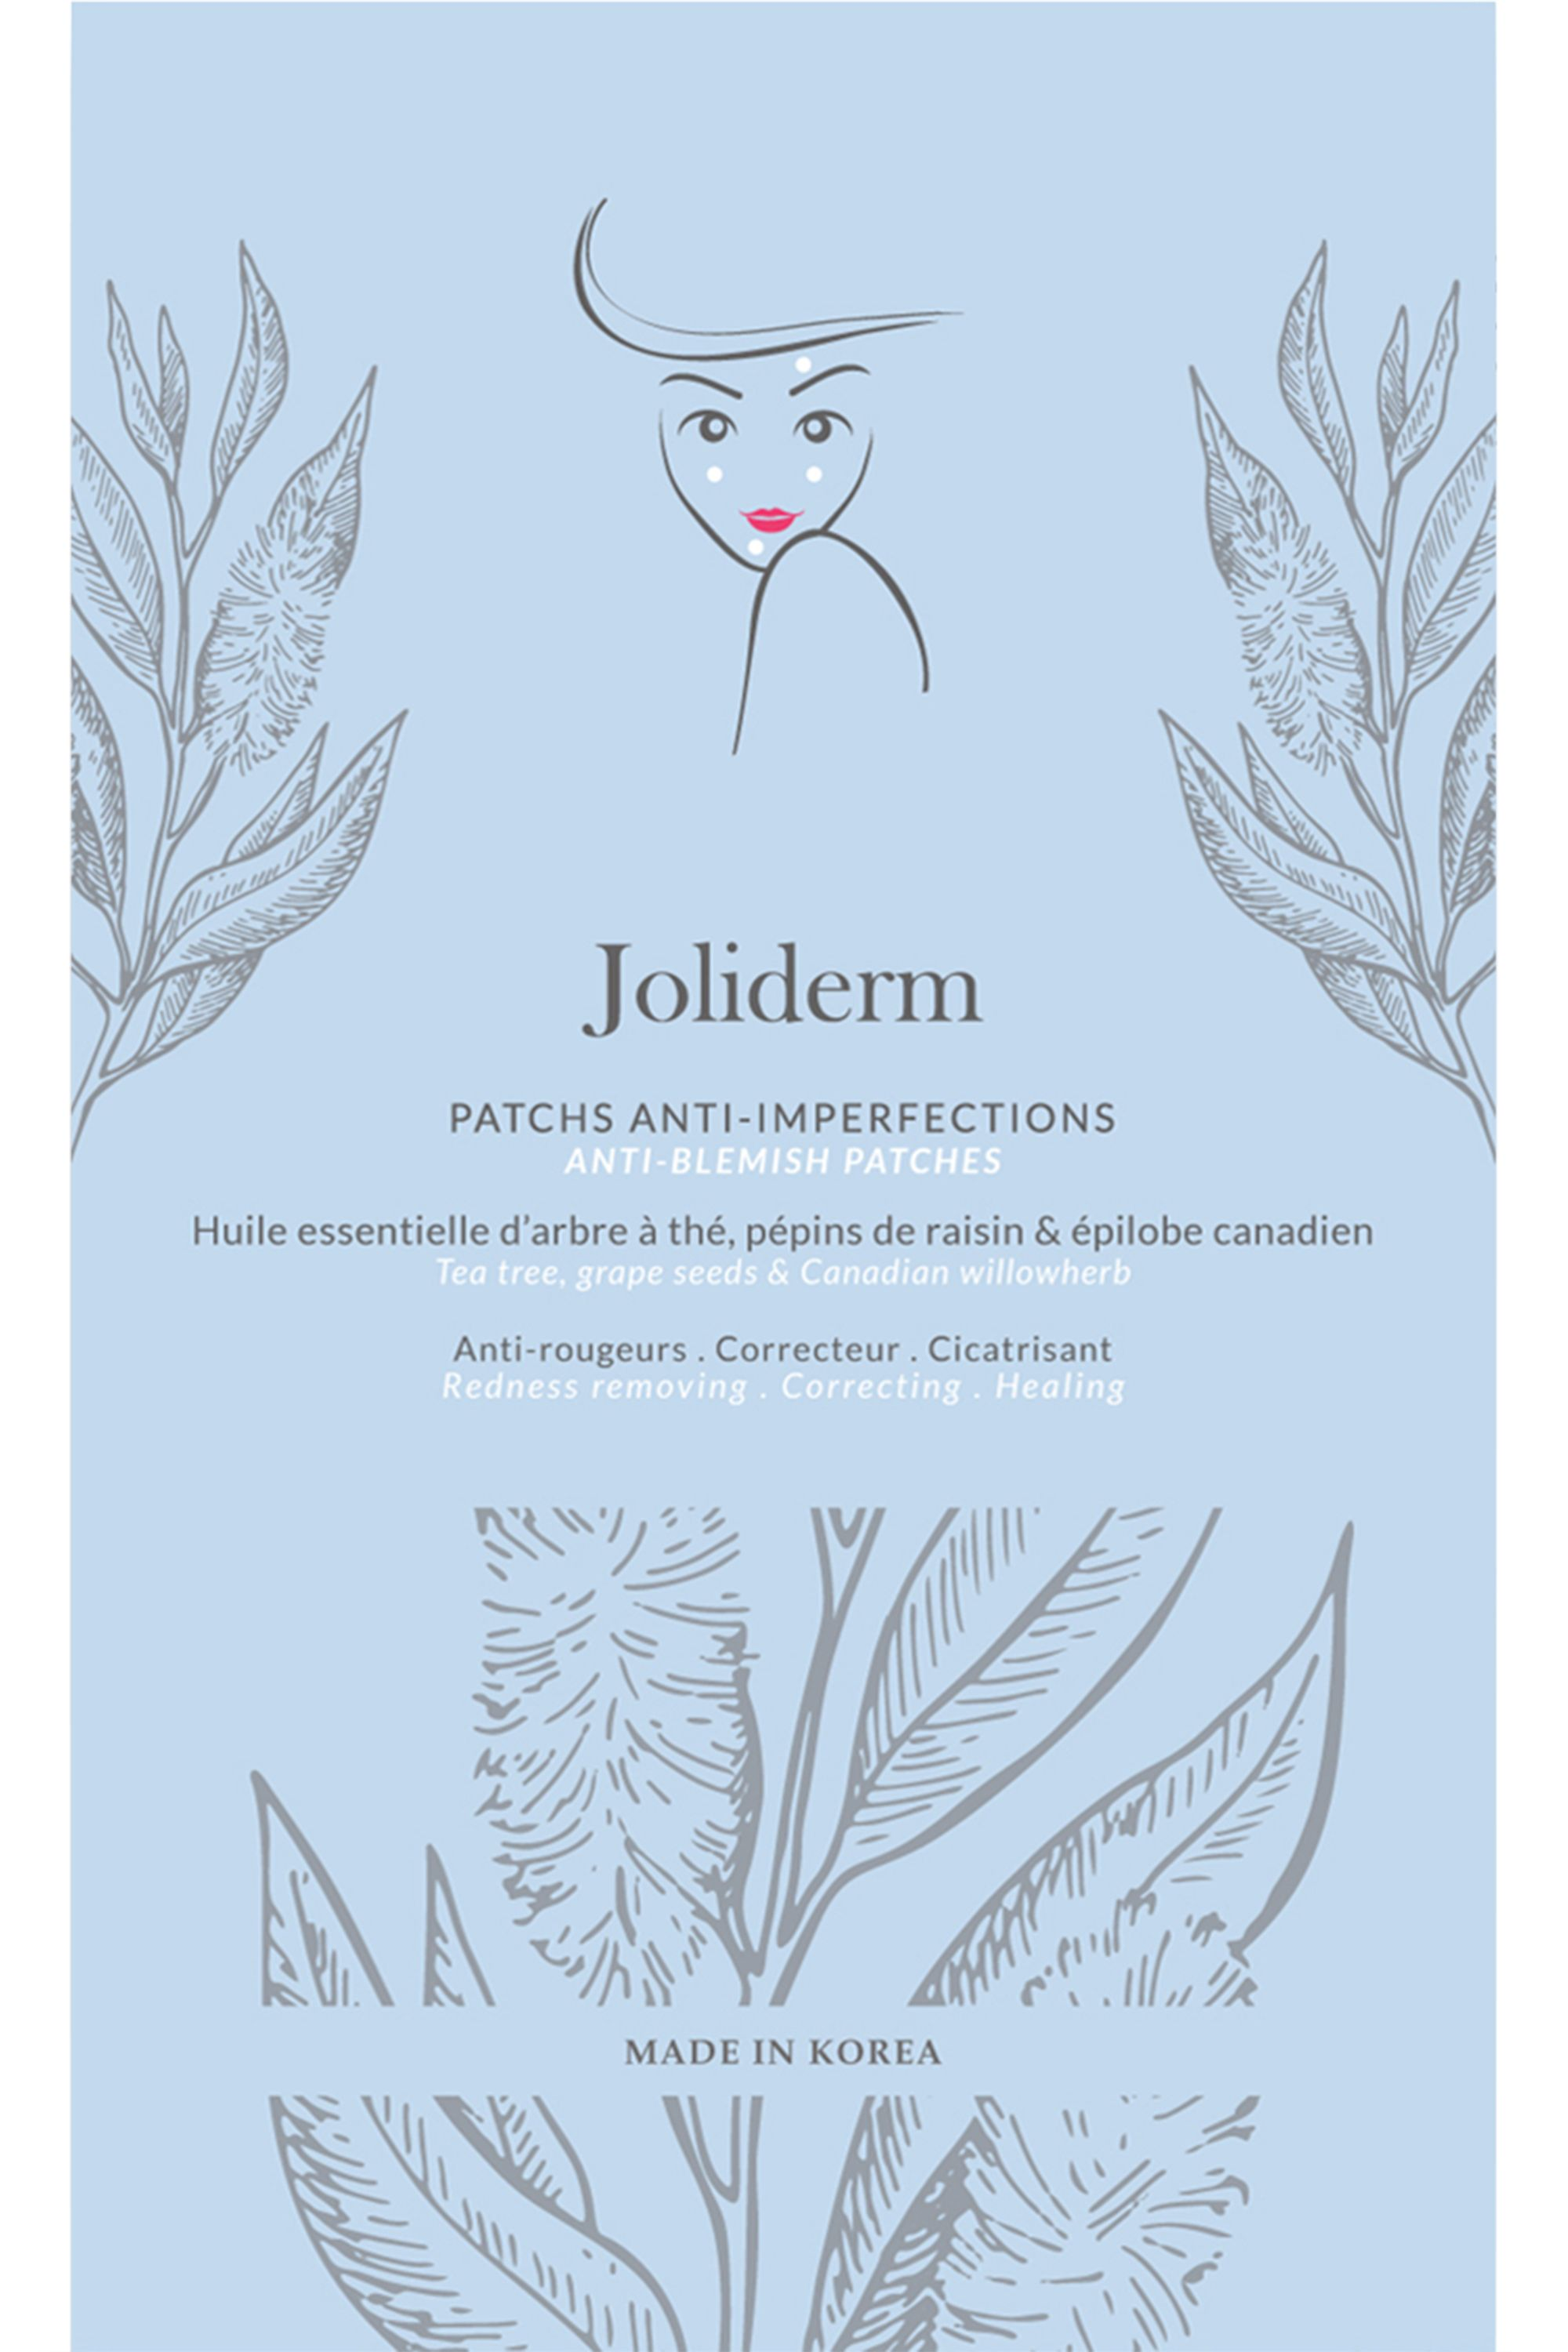 Blissim : Joliderm - Patch anti-imperfections - Patch anti-imperfections